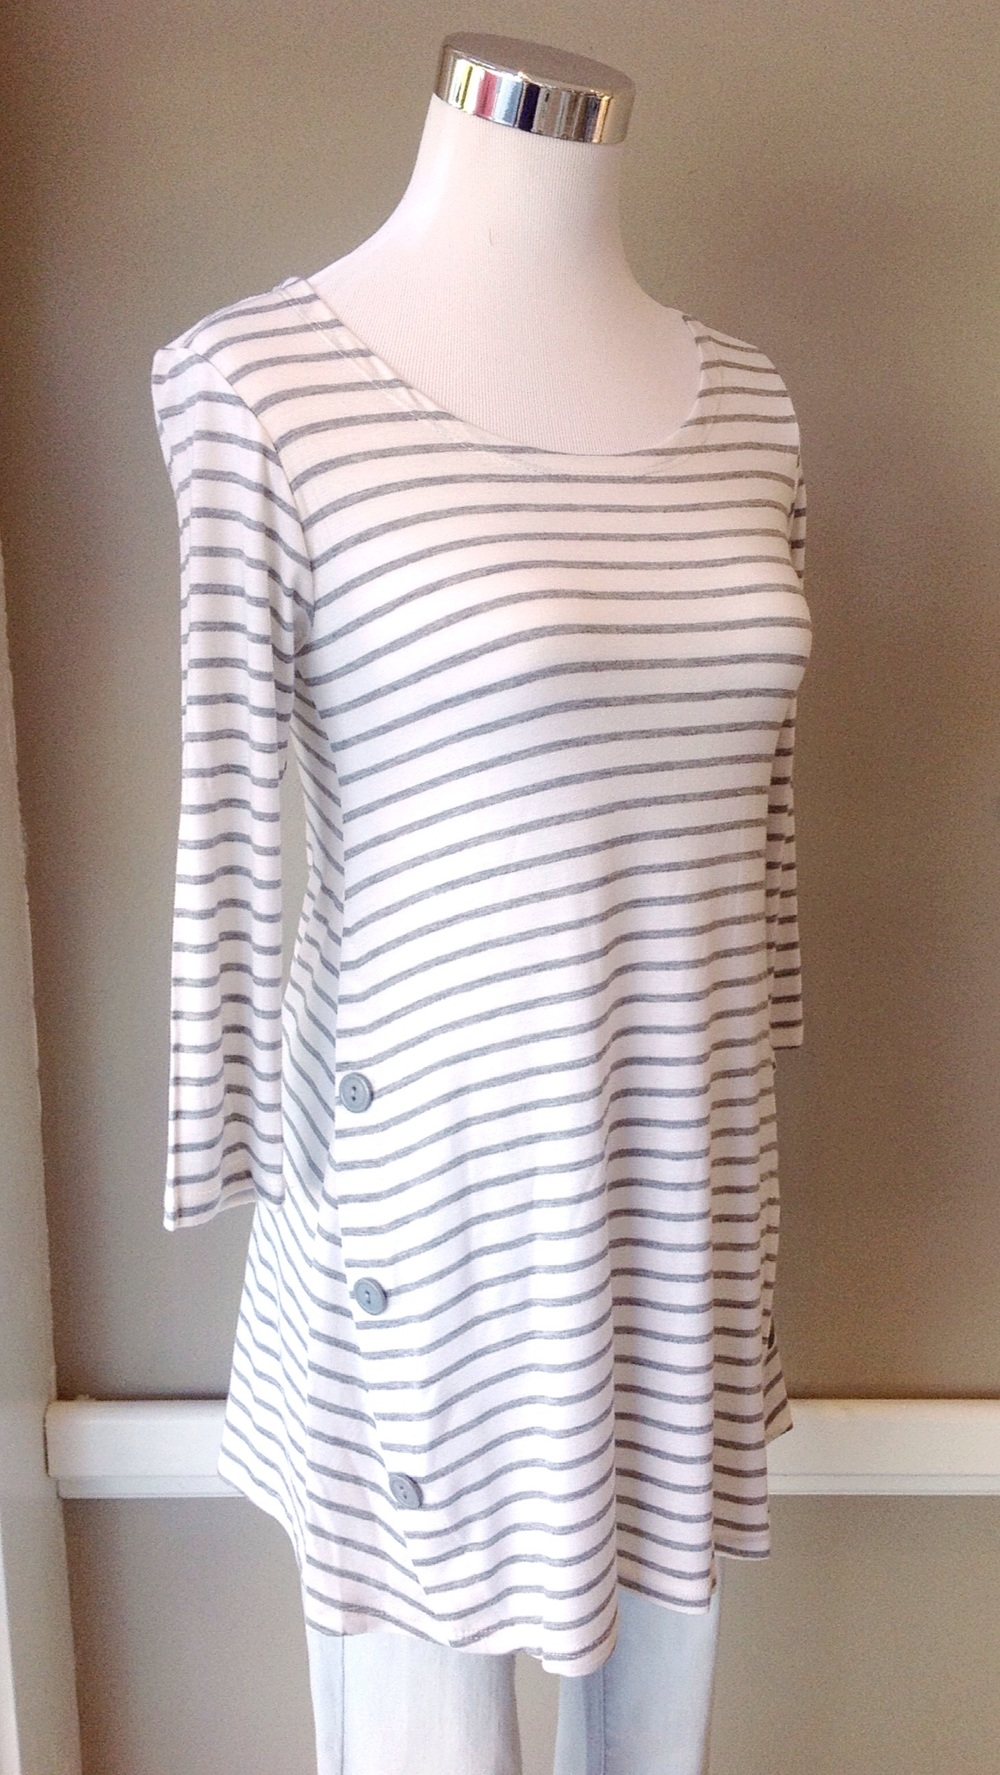 Stripe side button top with 3/4 sleeves in off-white/grey, $32